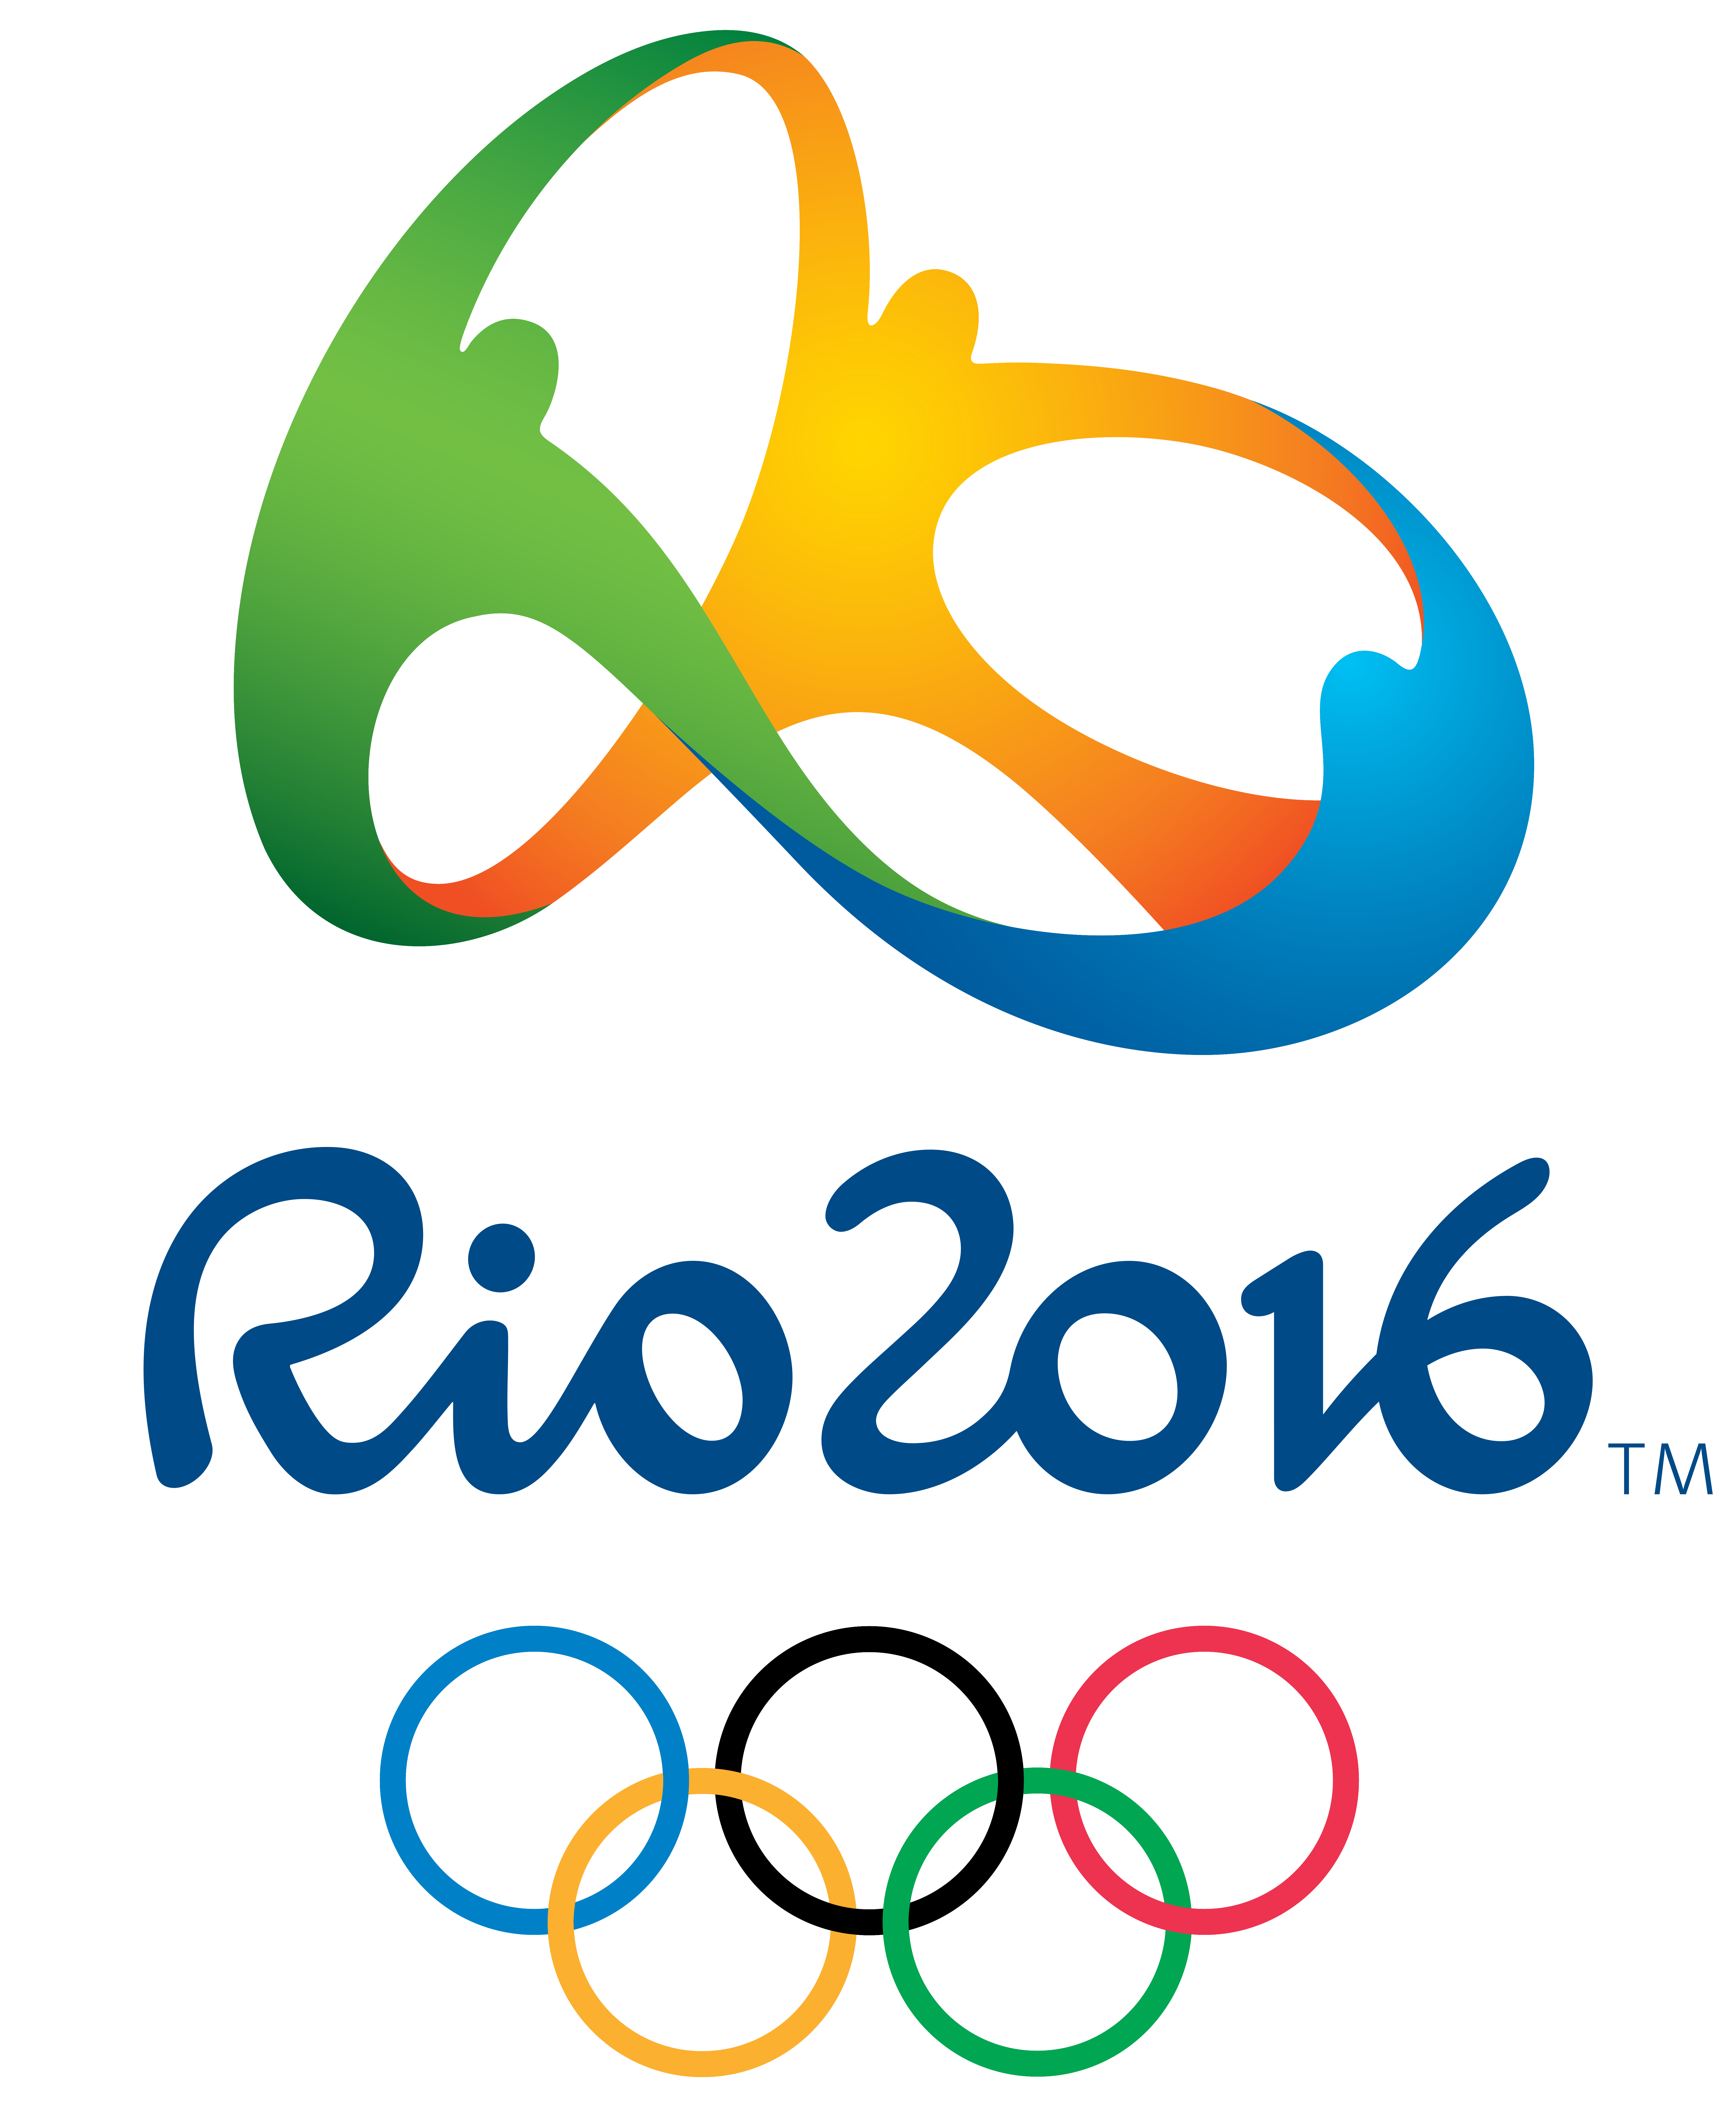 Olympic games official transparent. Rio 2016 logo png svg